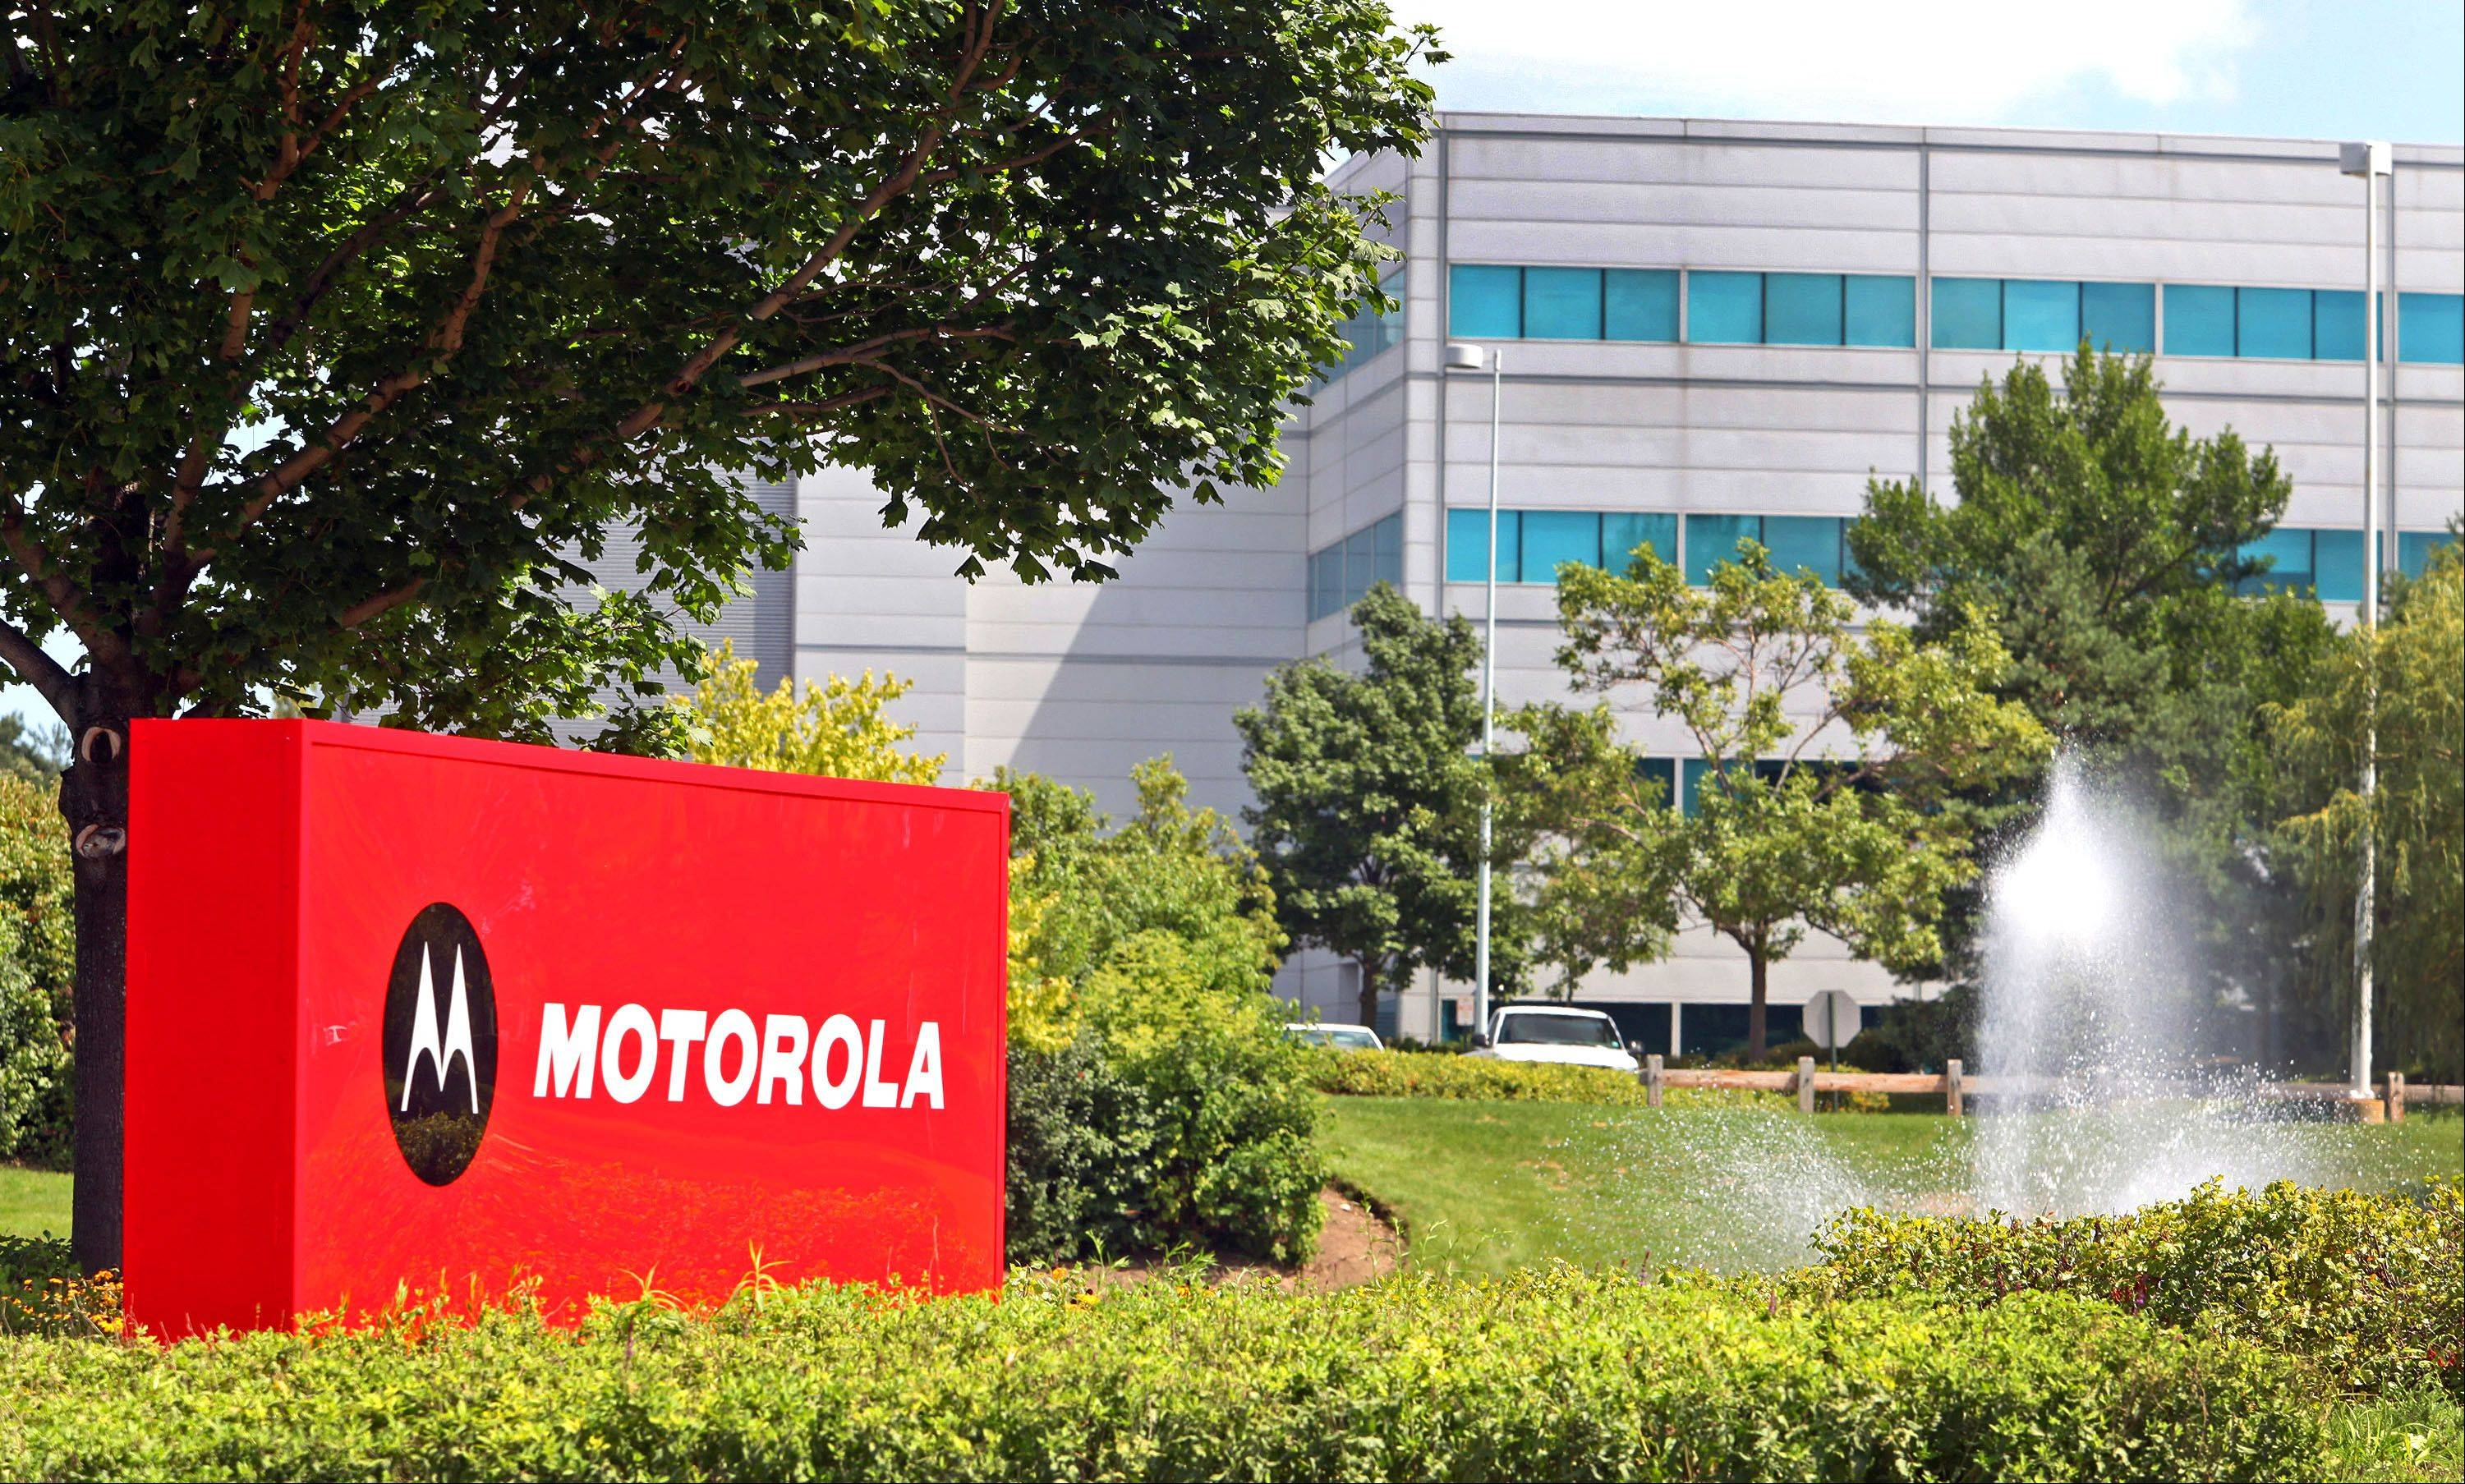 Google's Motorola Mobility unit currently is located in Libertyville although the company plans to move to downtown Chicago.